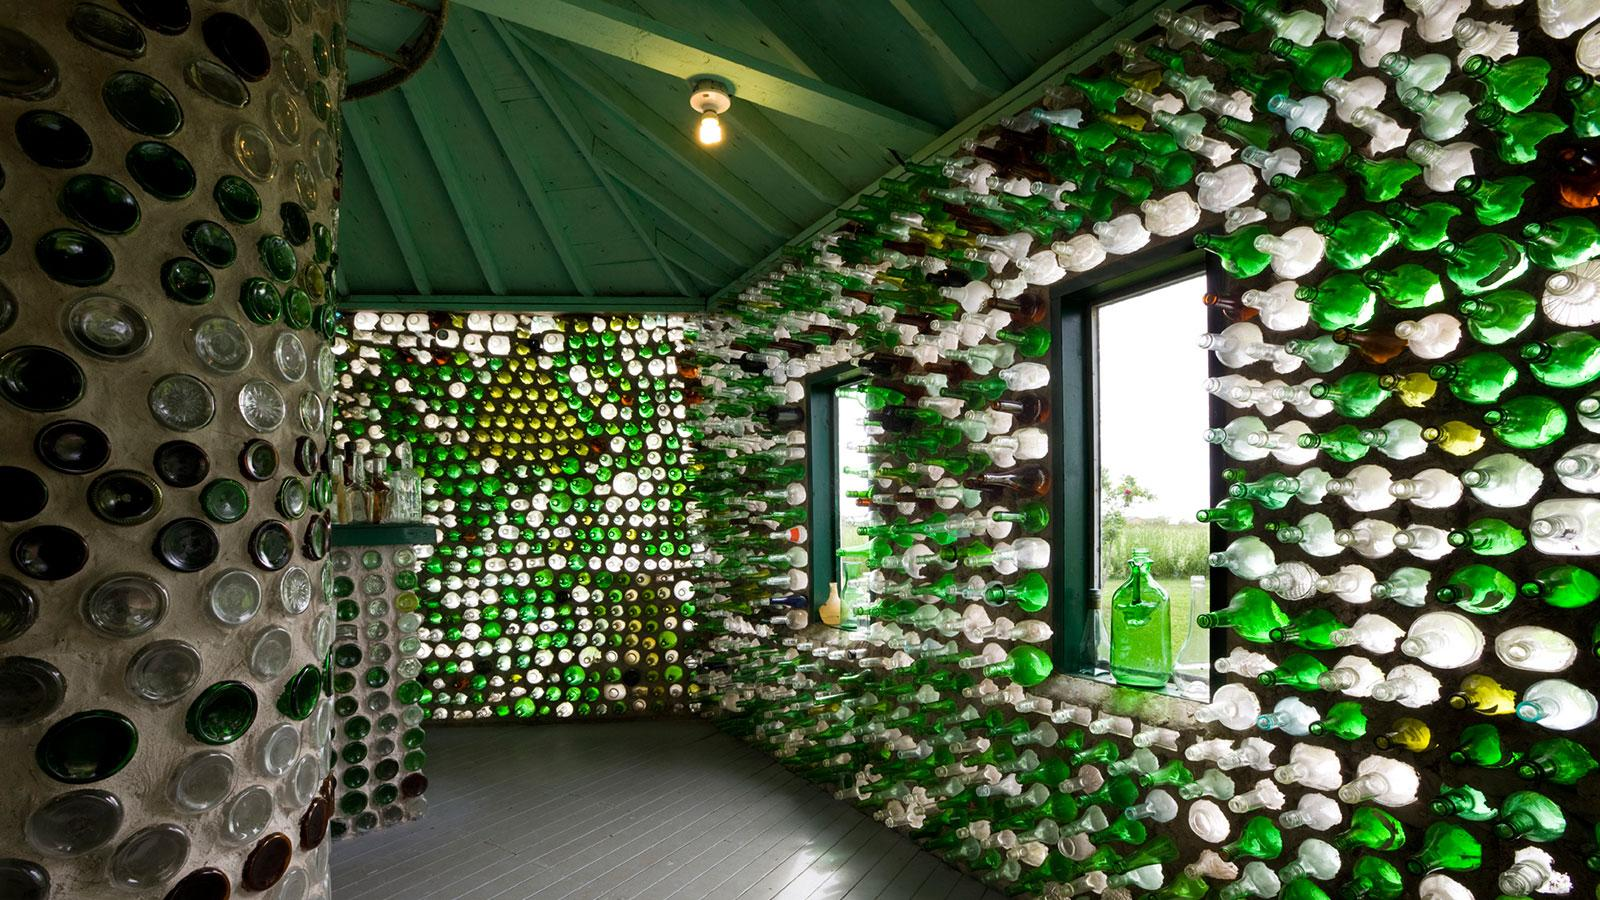 In A World Of Finite Resources, The Potential To Reuse Obsolete Or Unneeded  Material Is Inspiring Creative New Solutions For A Built Environment We Can  Live ...